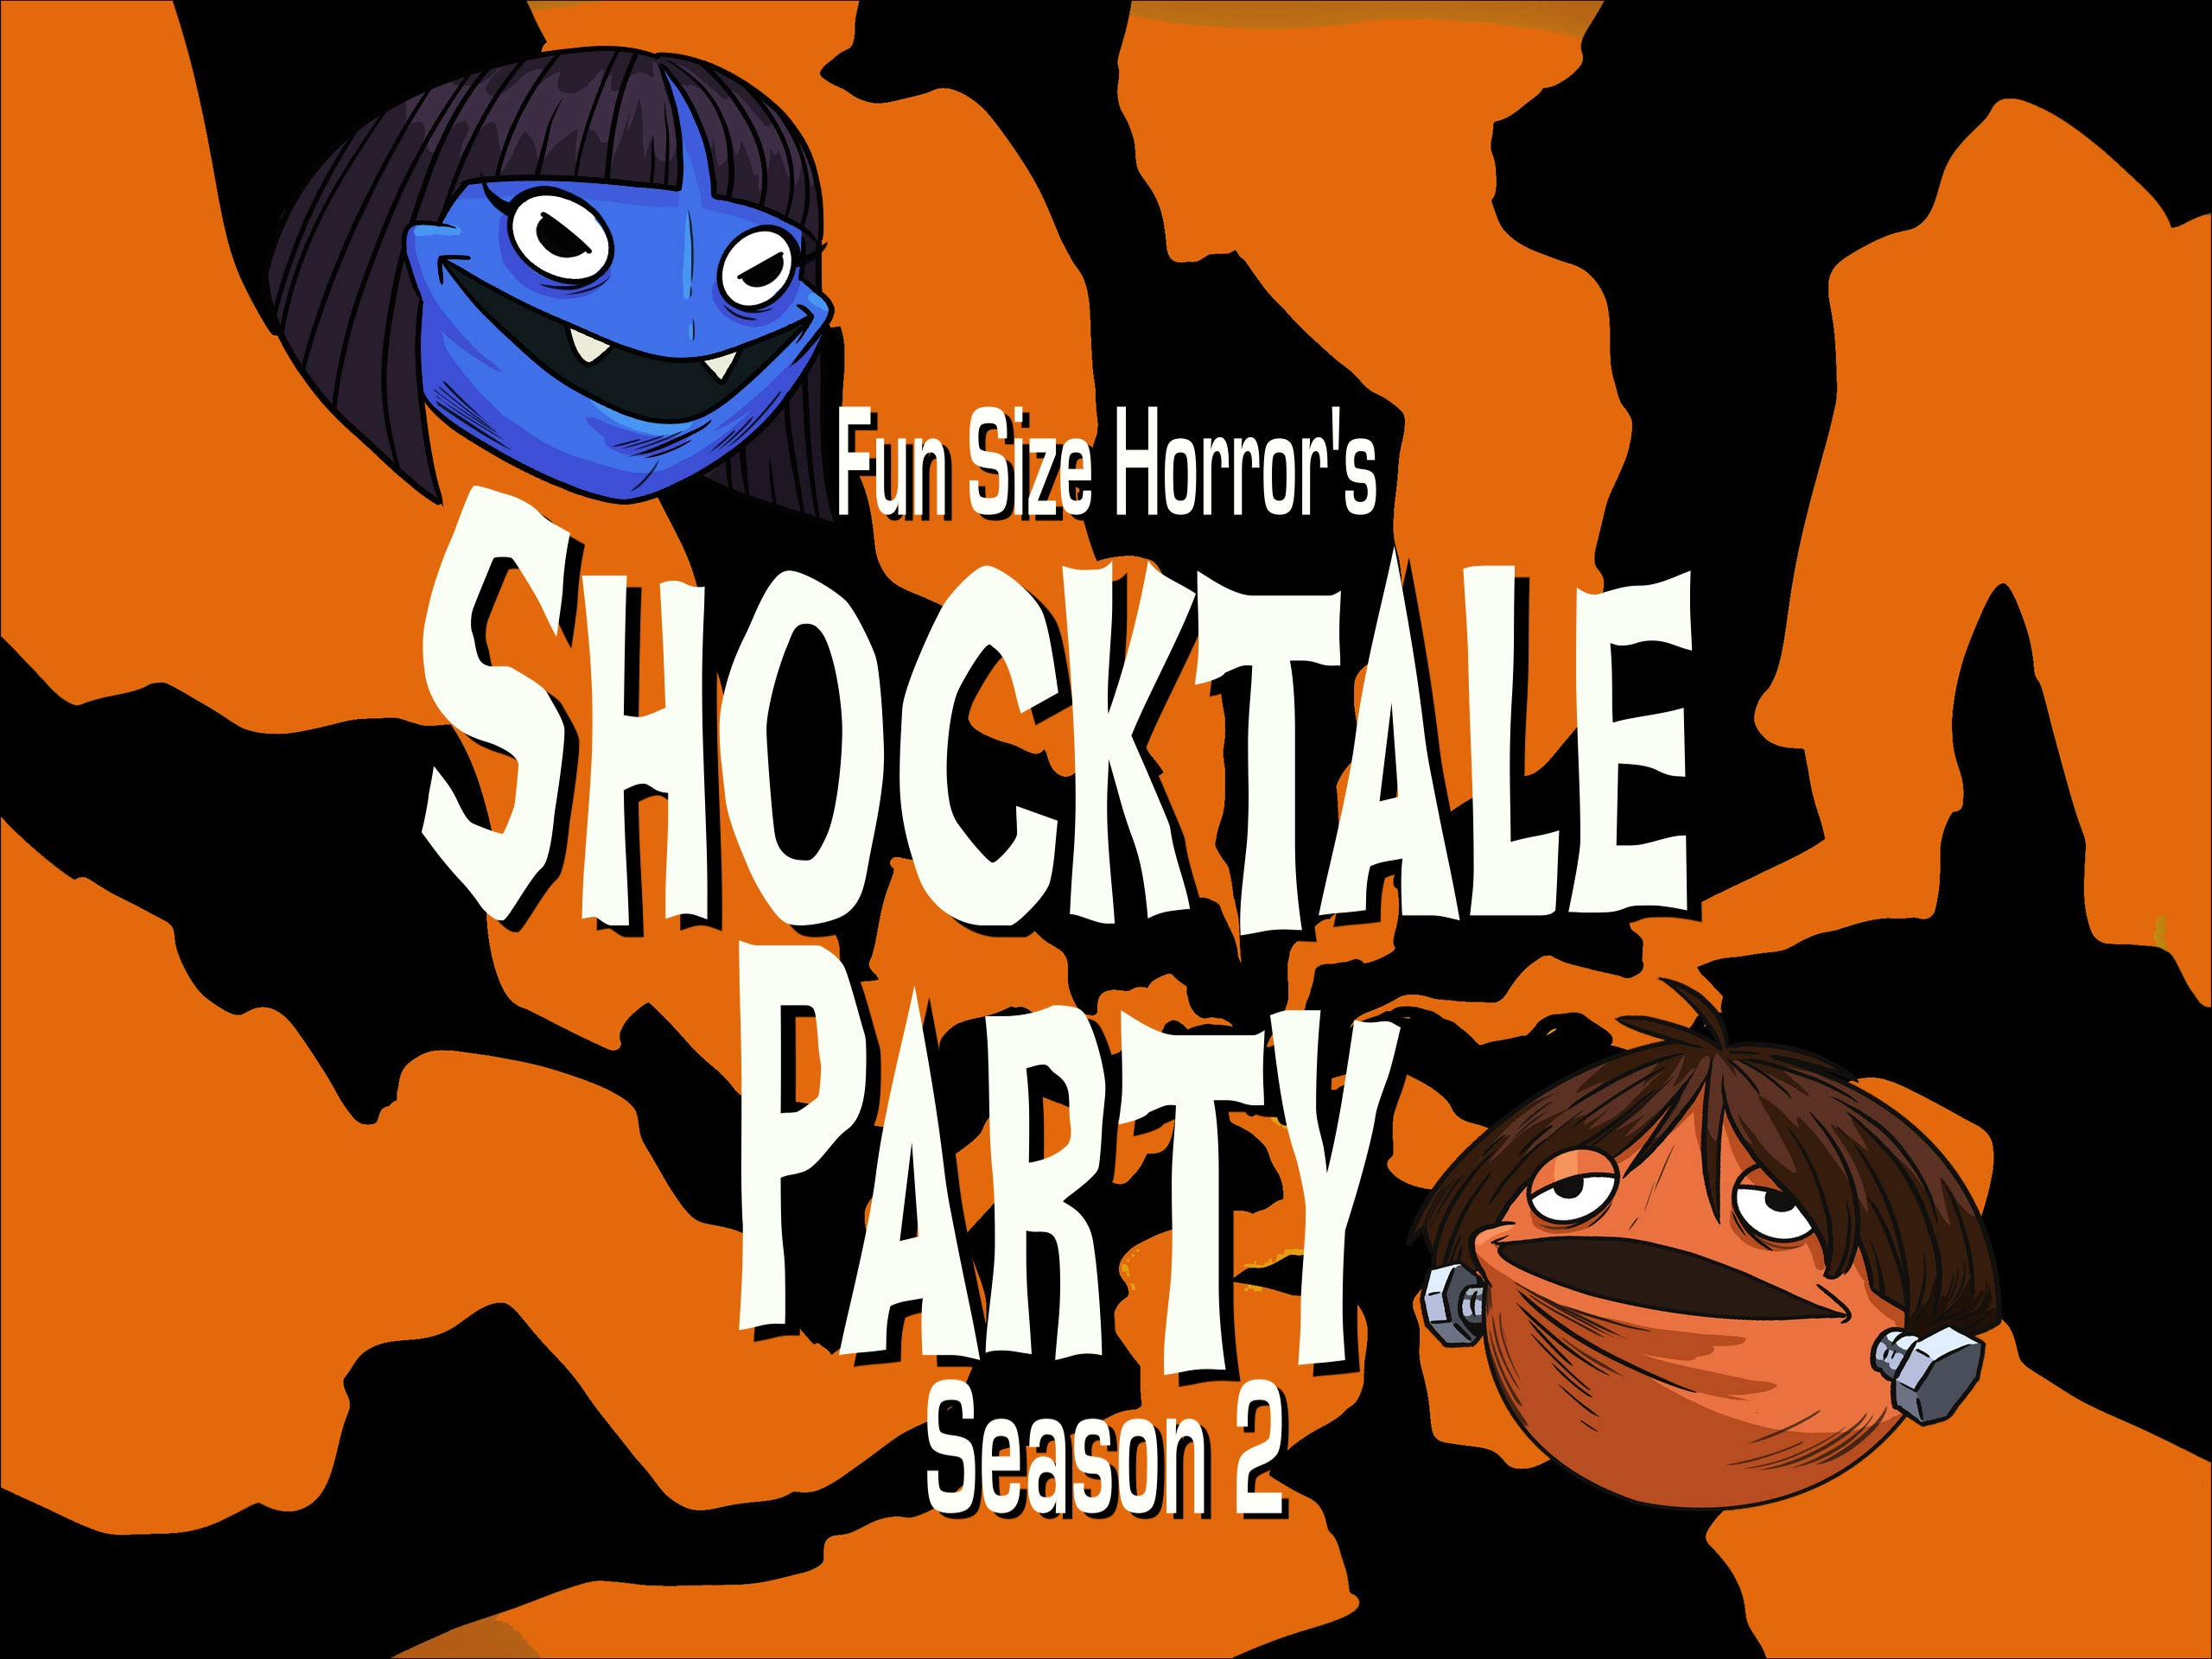 Fun Size Horror's Shocktale Party